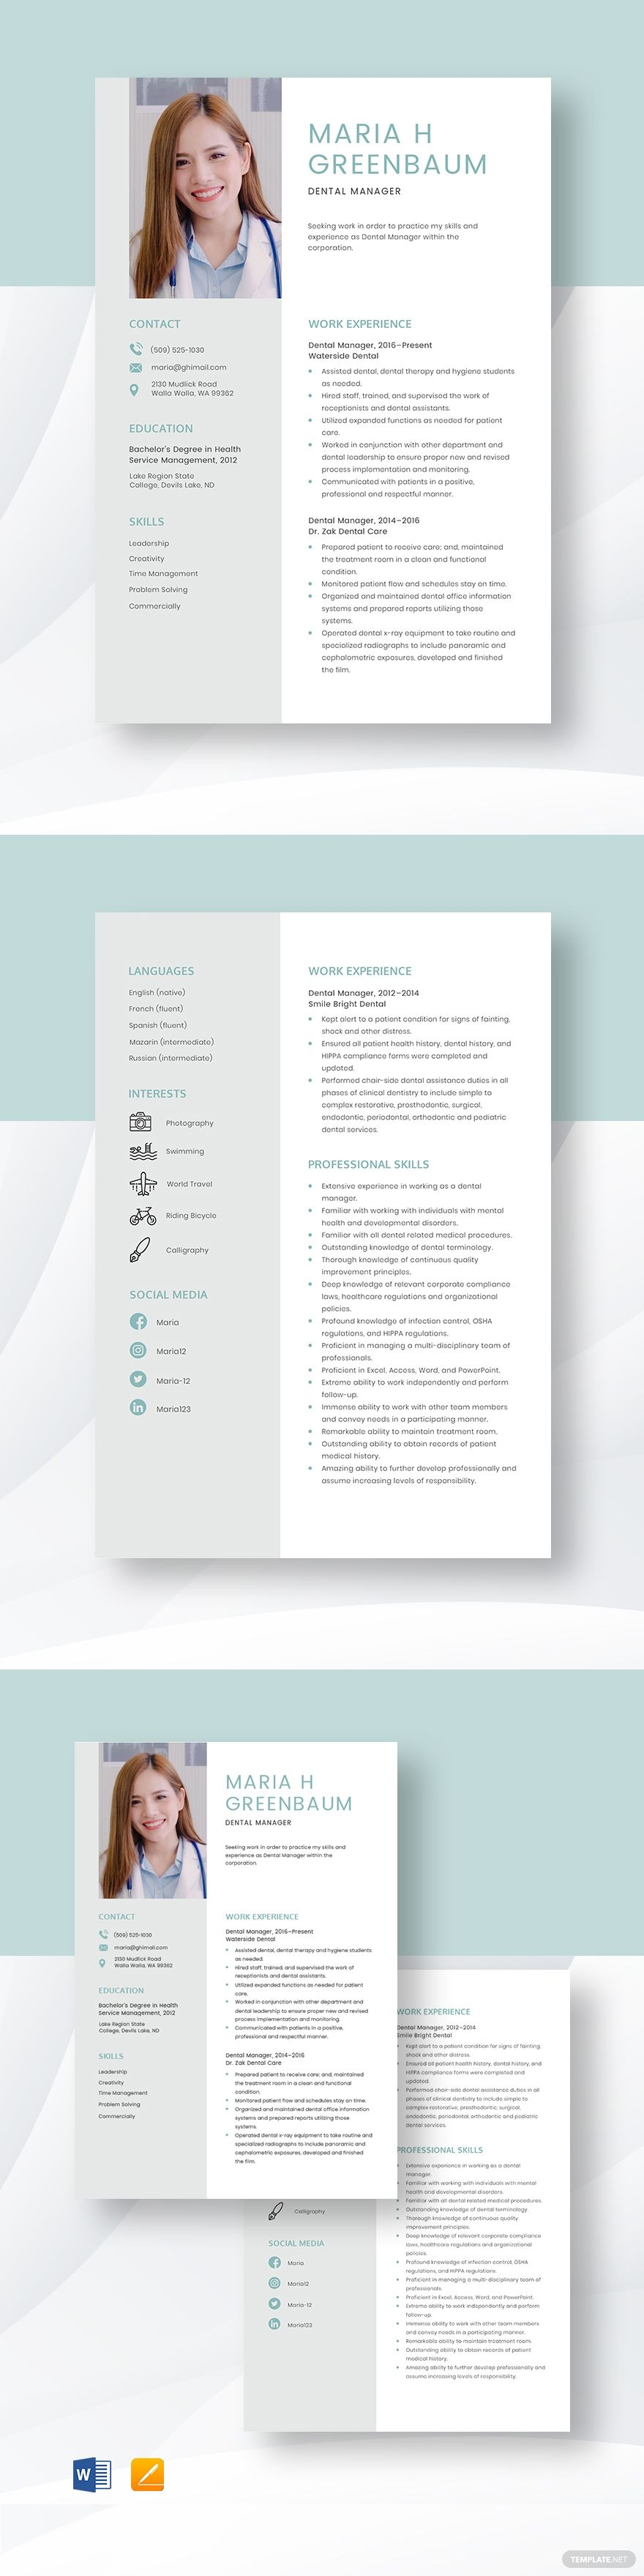 Dental manager resume template in 2020 website template